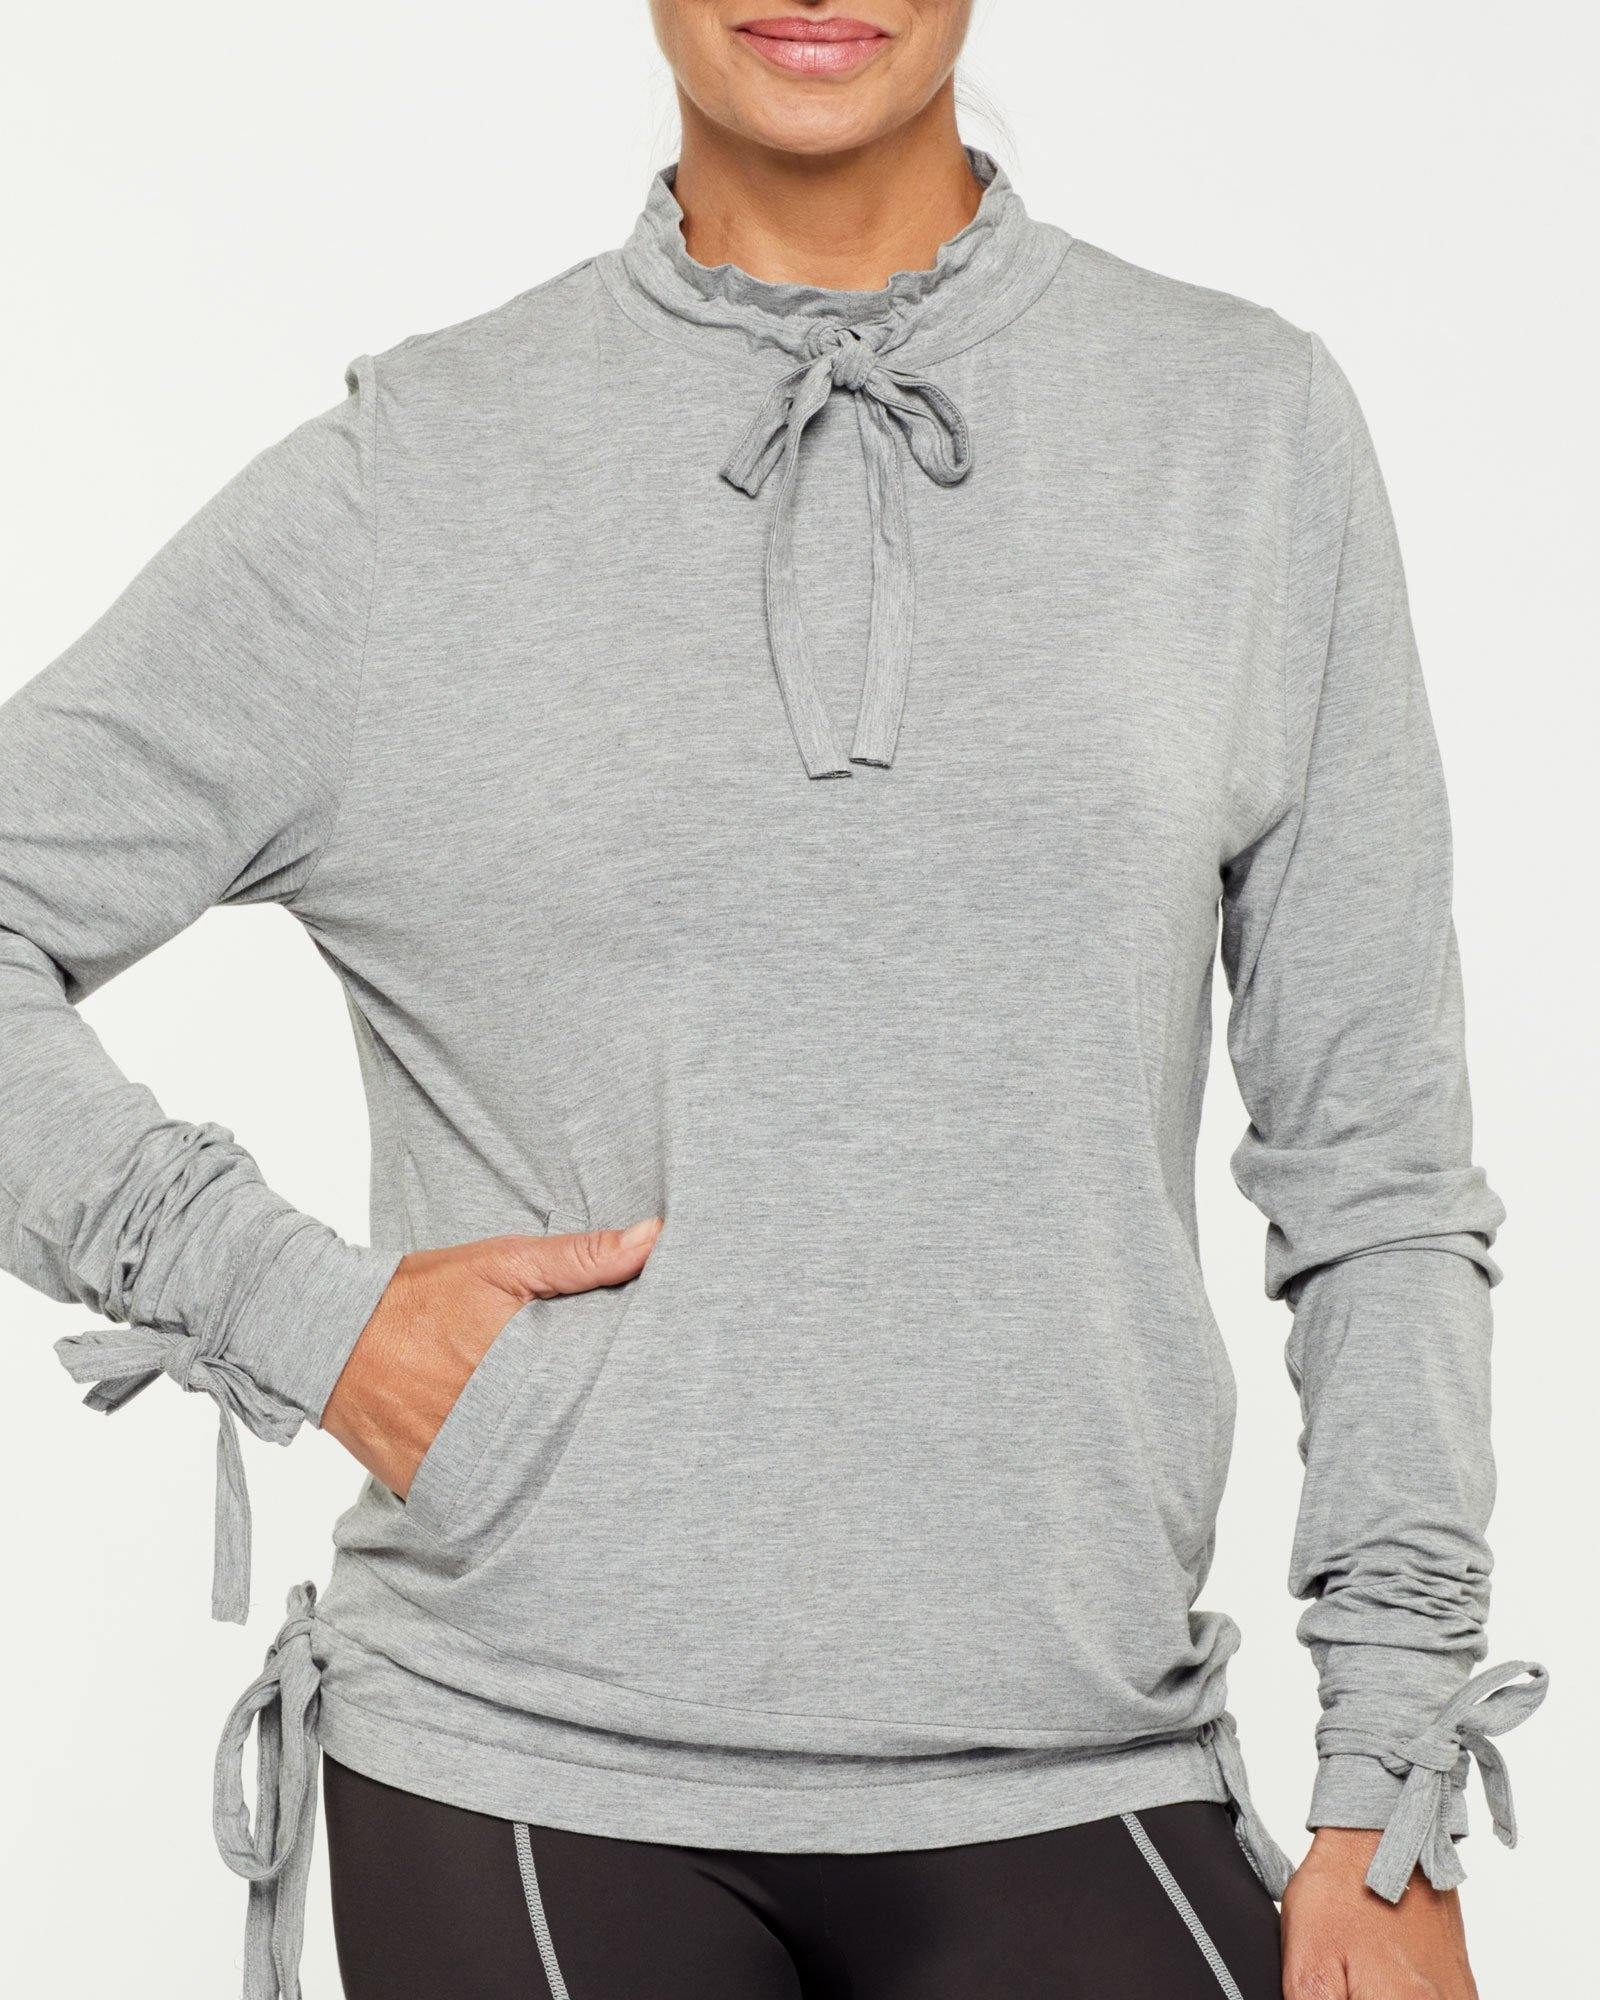 Steely Spinae Long Sleeve Top